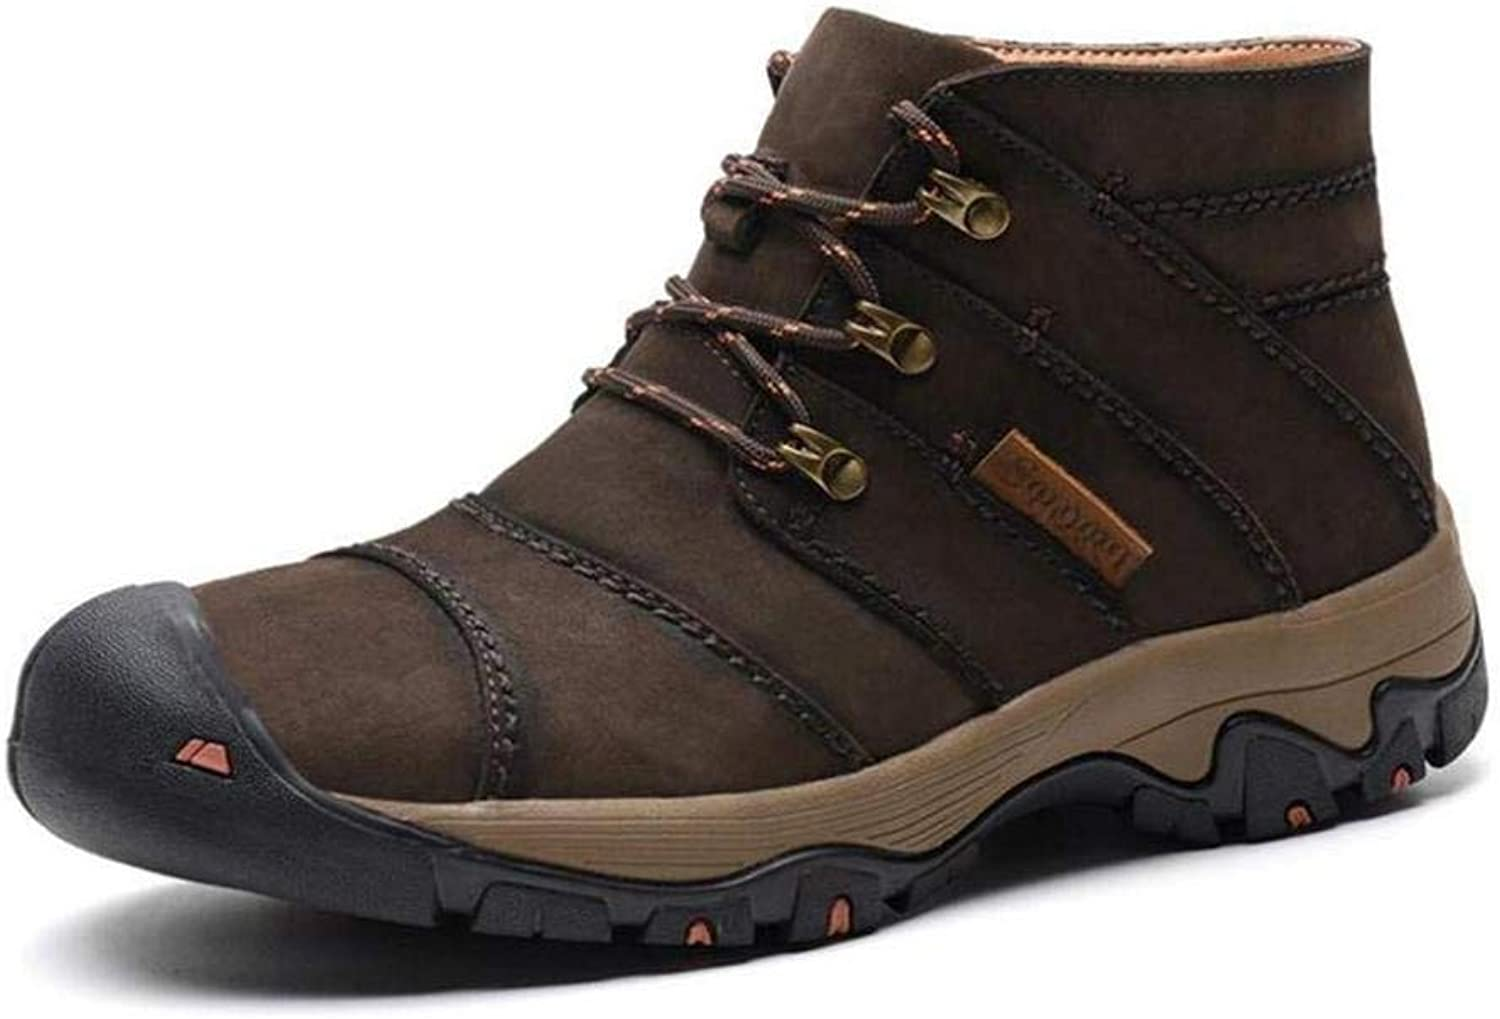 G'z Men's Winter Boots, Warm Leather Hiking shoes Climbing Sneakers Mens Casual Outdoor Walking Hiking Travelling Tooling Boots